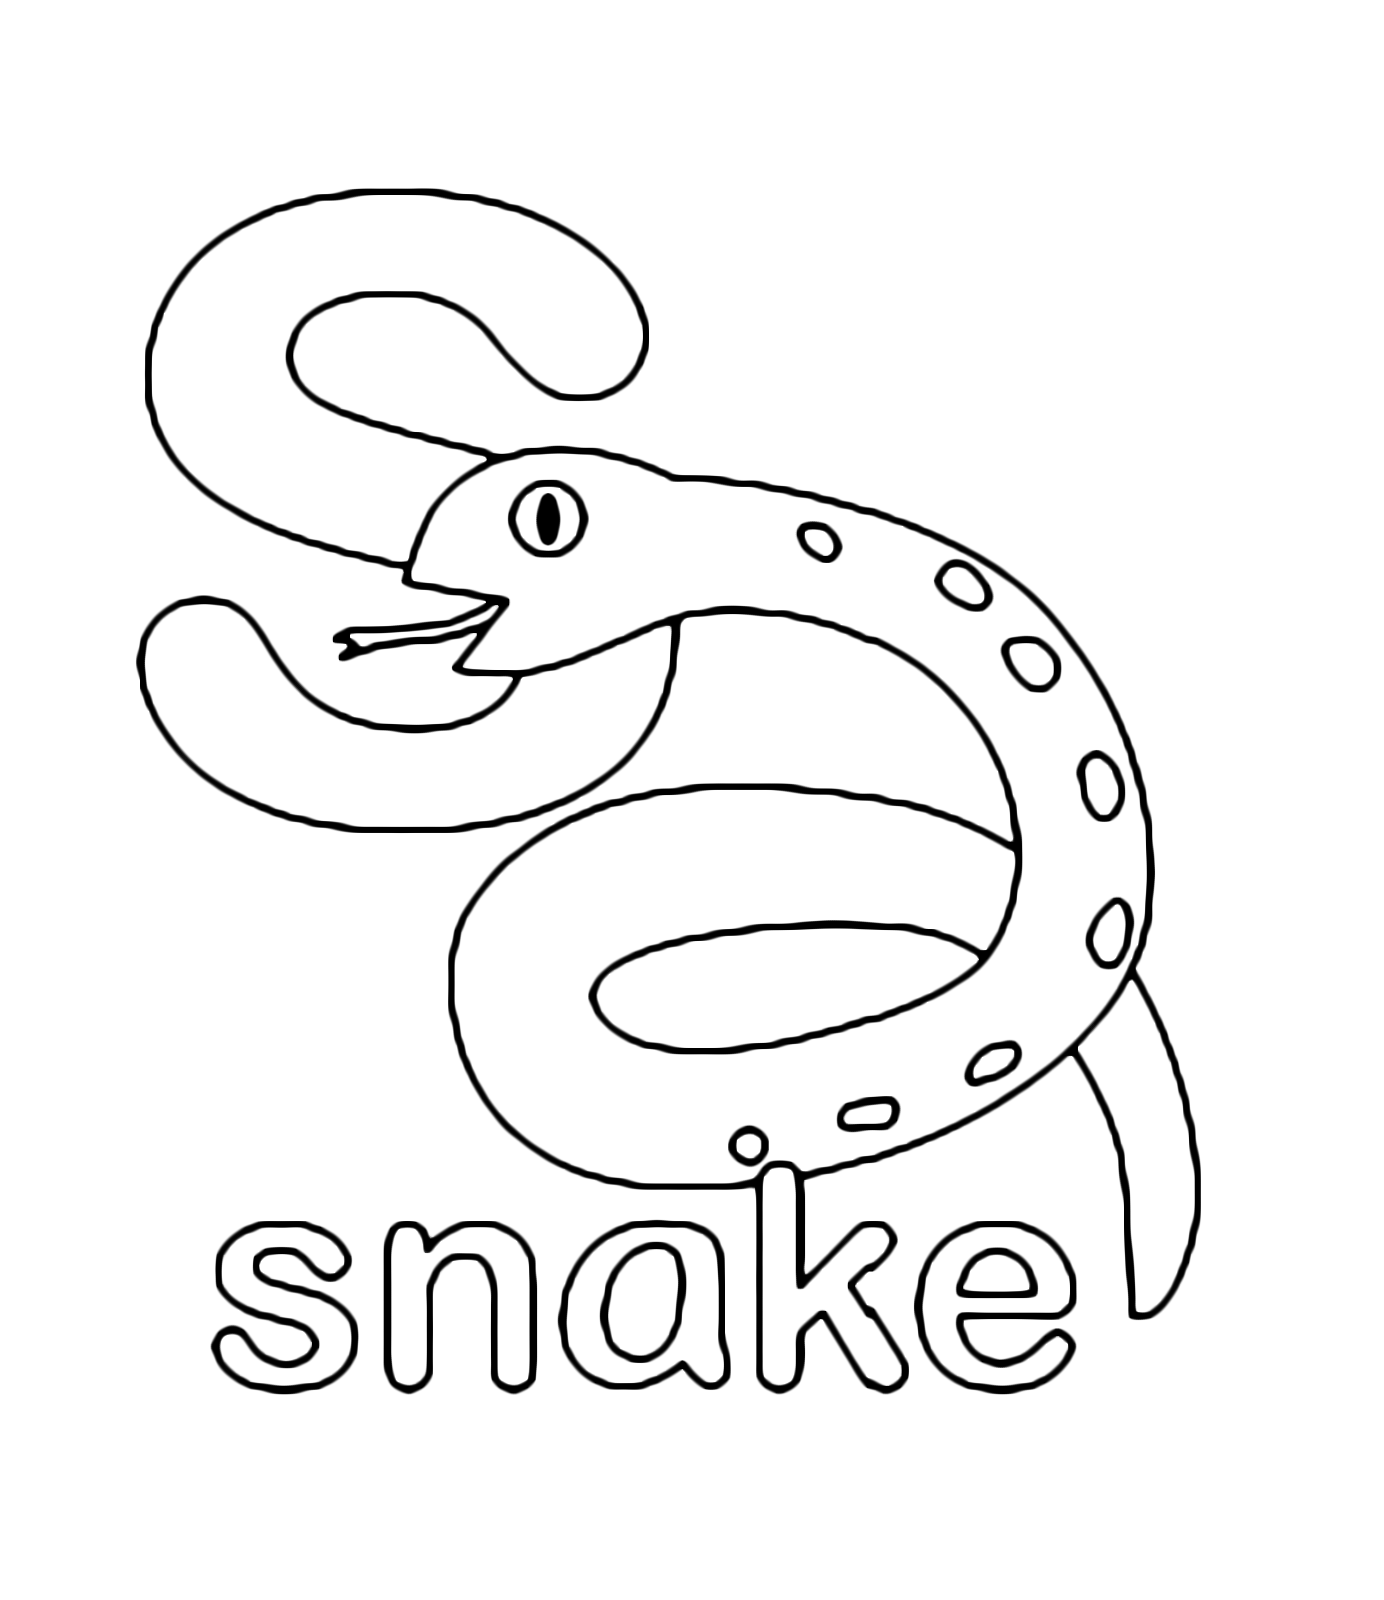 s is for snake s is for snake coloring page s snake is for